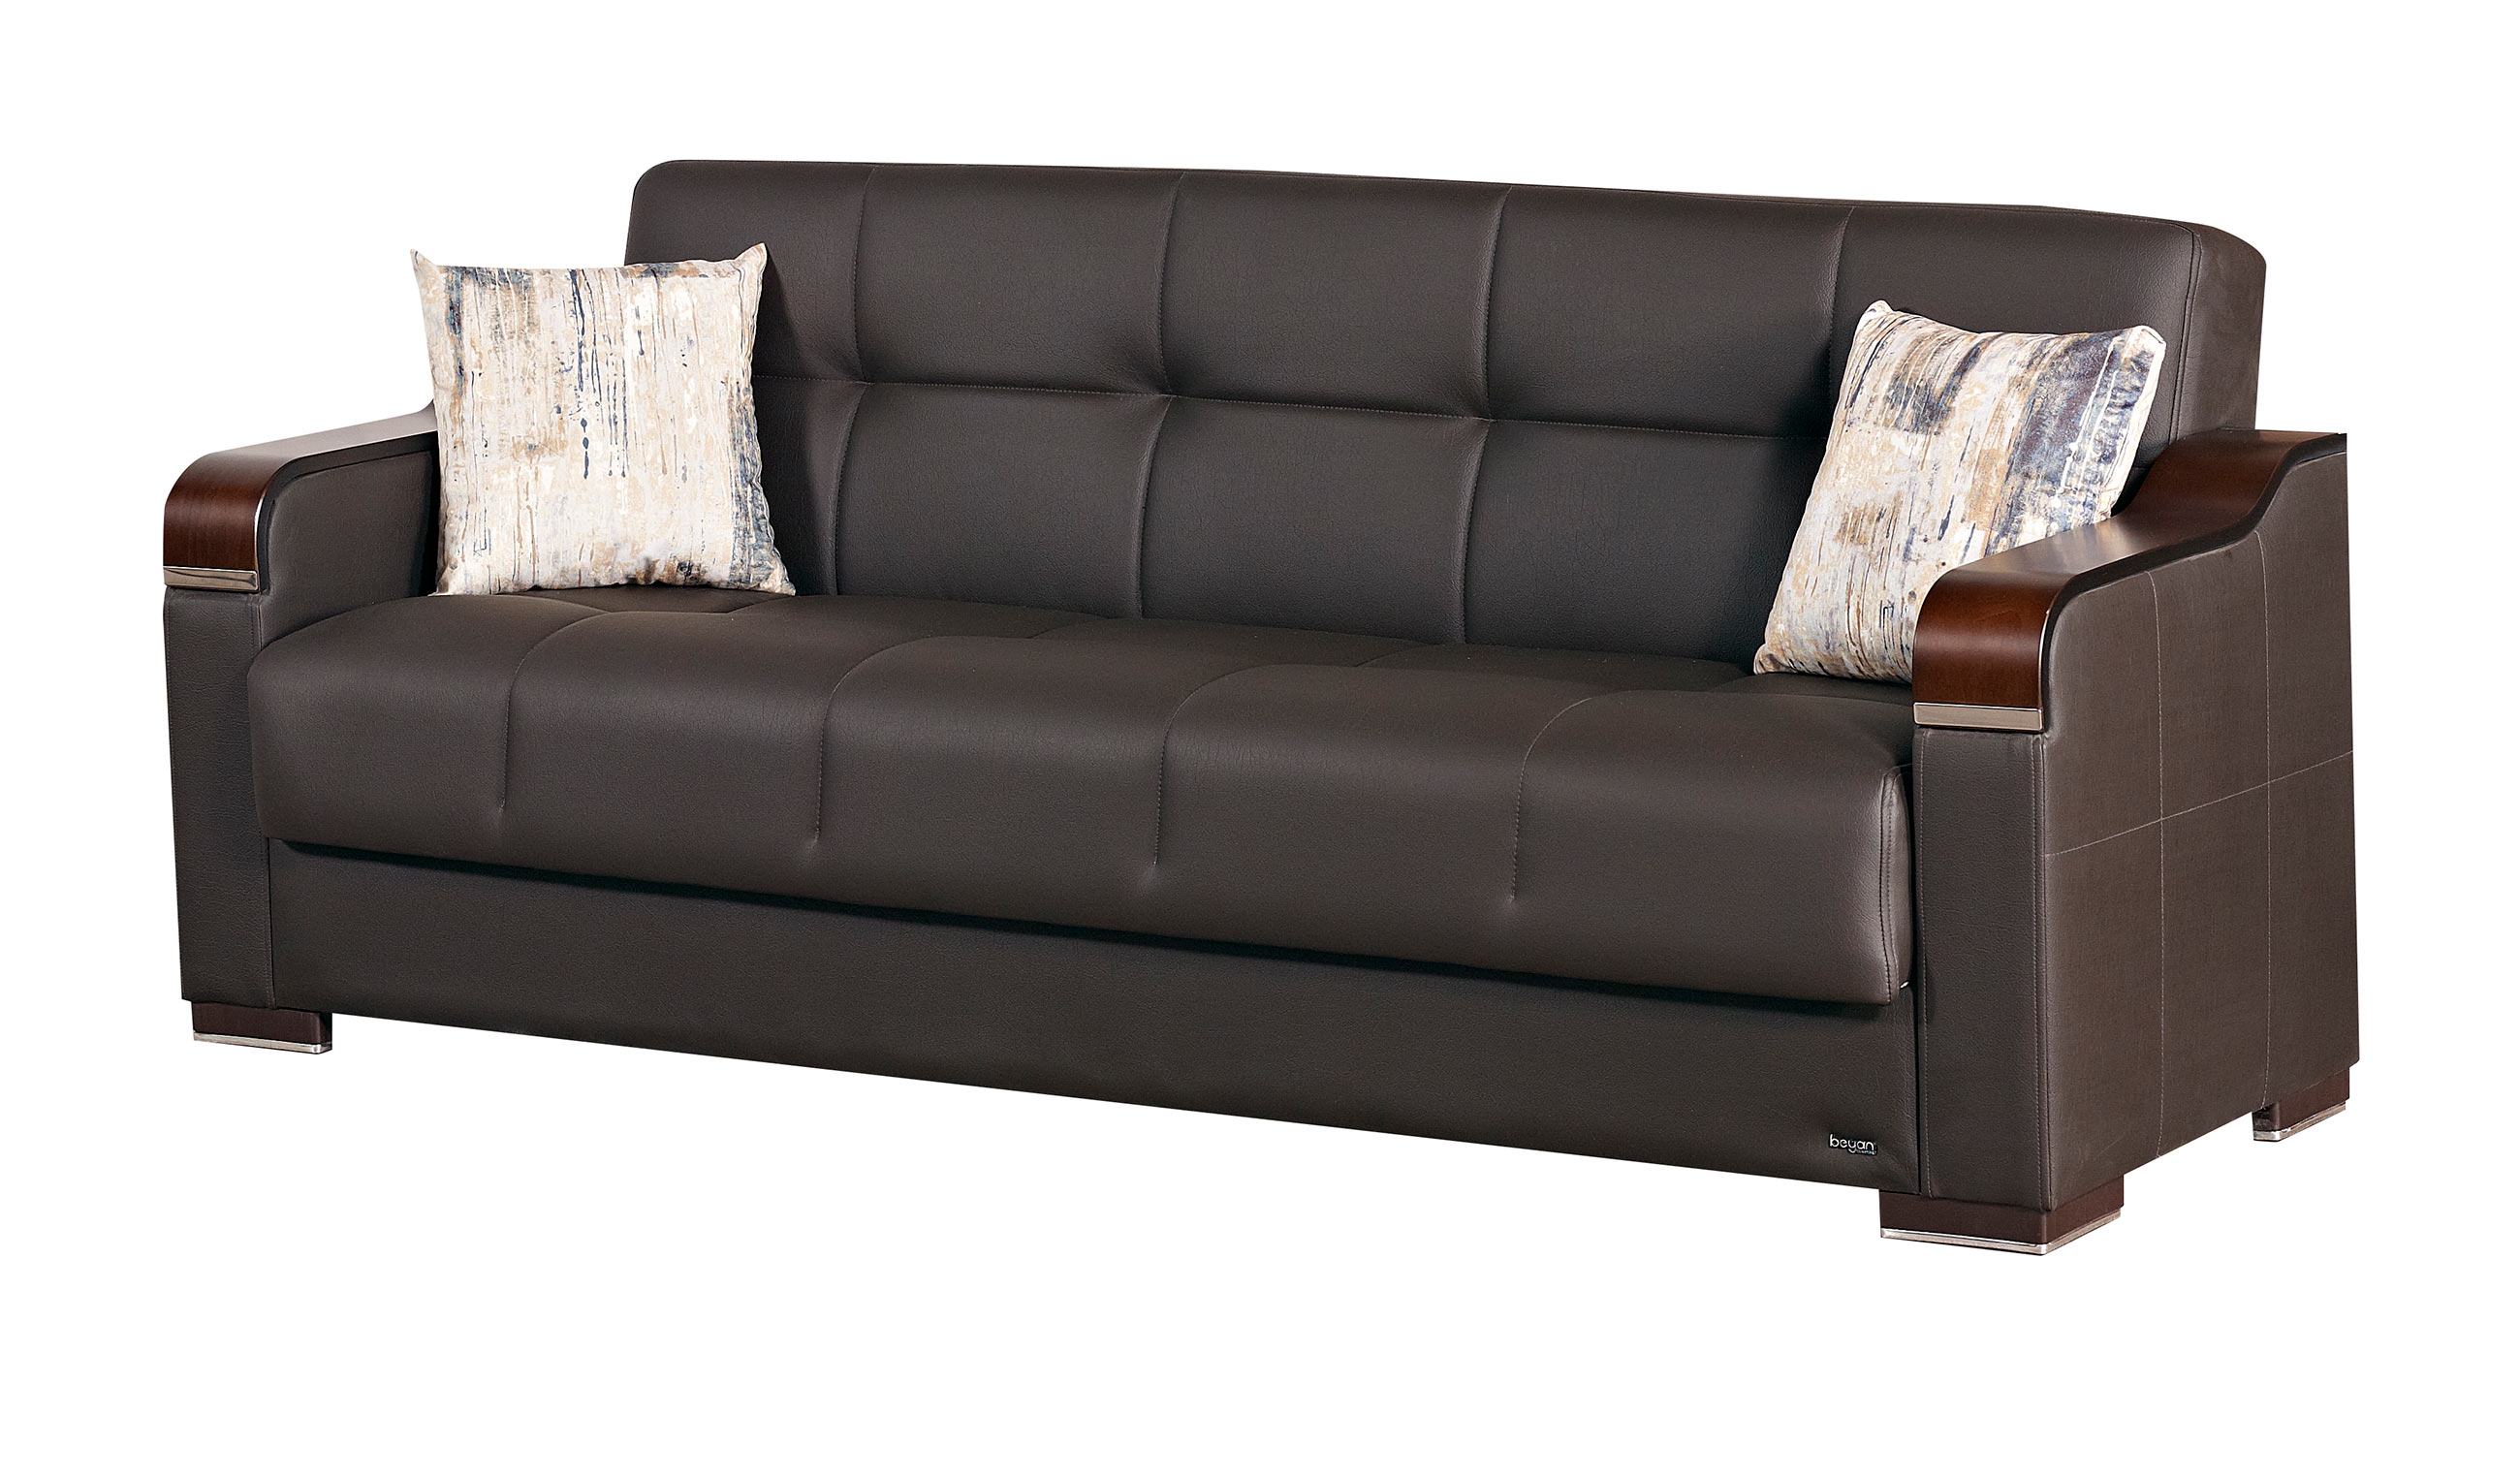 Paramus dark brown fabric sofa bed by empire furniture usa for Divan furniture usa